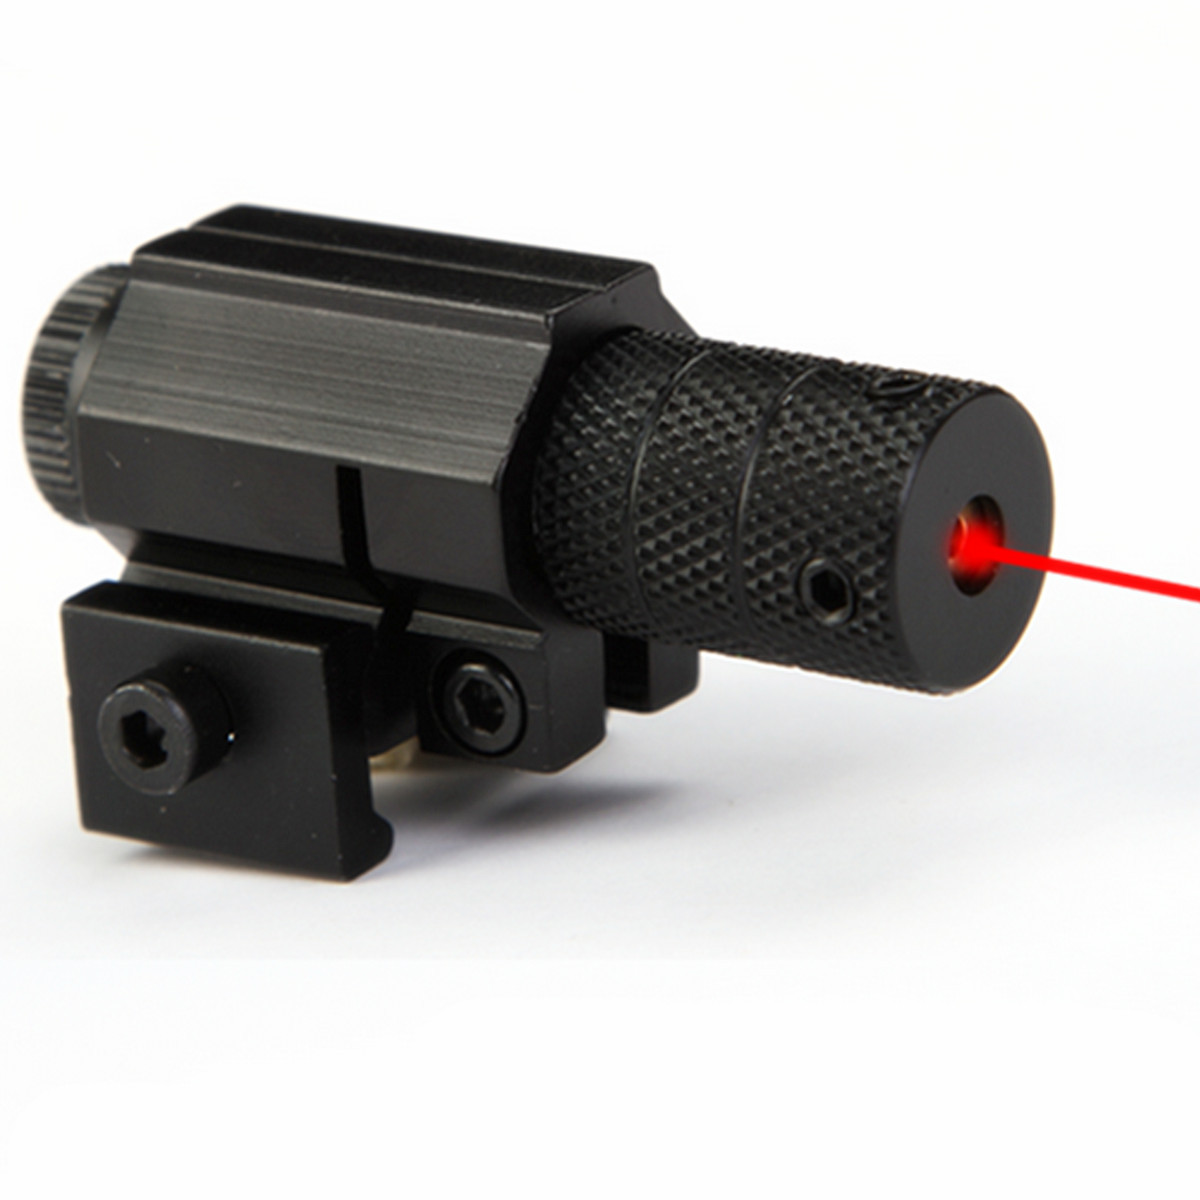 100m 835-655mm Tactical Aiming Red Beam Dot Laser Bore Sight Scope With Mount for Gun Rifle Pistol peq15 la5 airsoft spotlight weapon shotguns light tactical flashlight military red dot ir laser pistol lanterna rifle lights